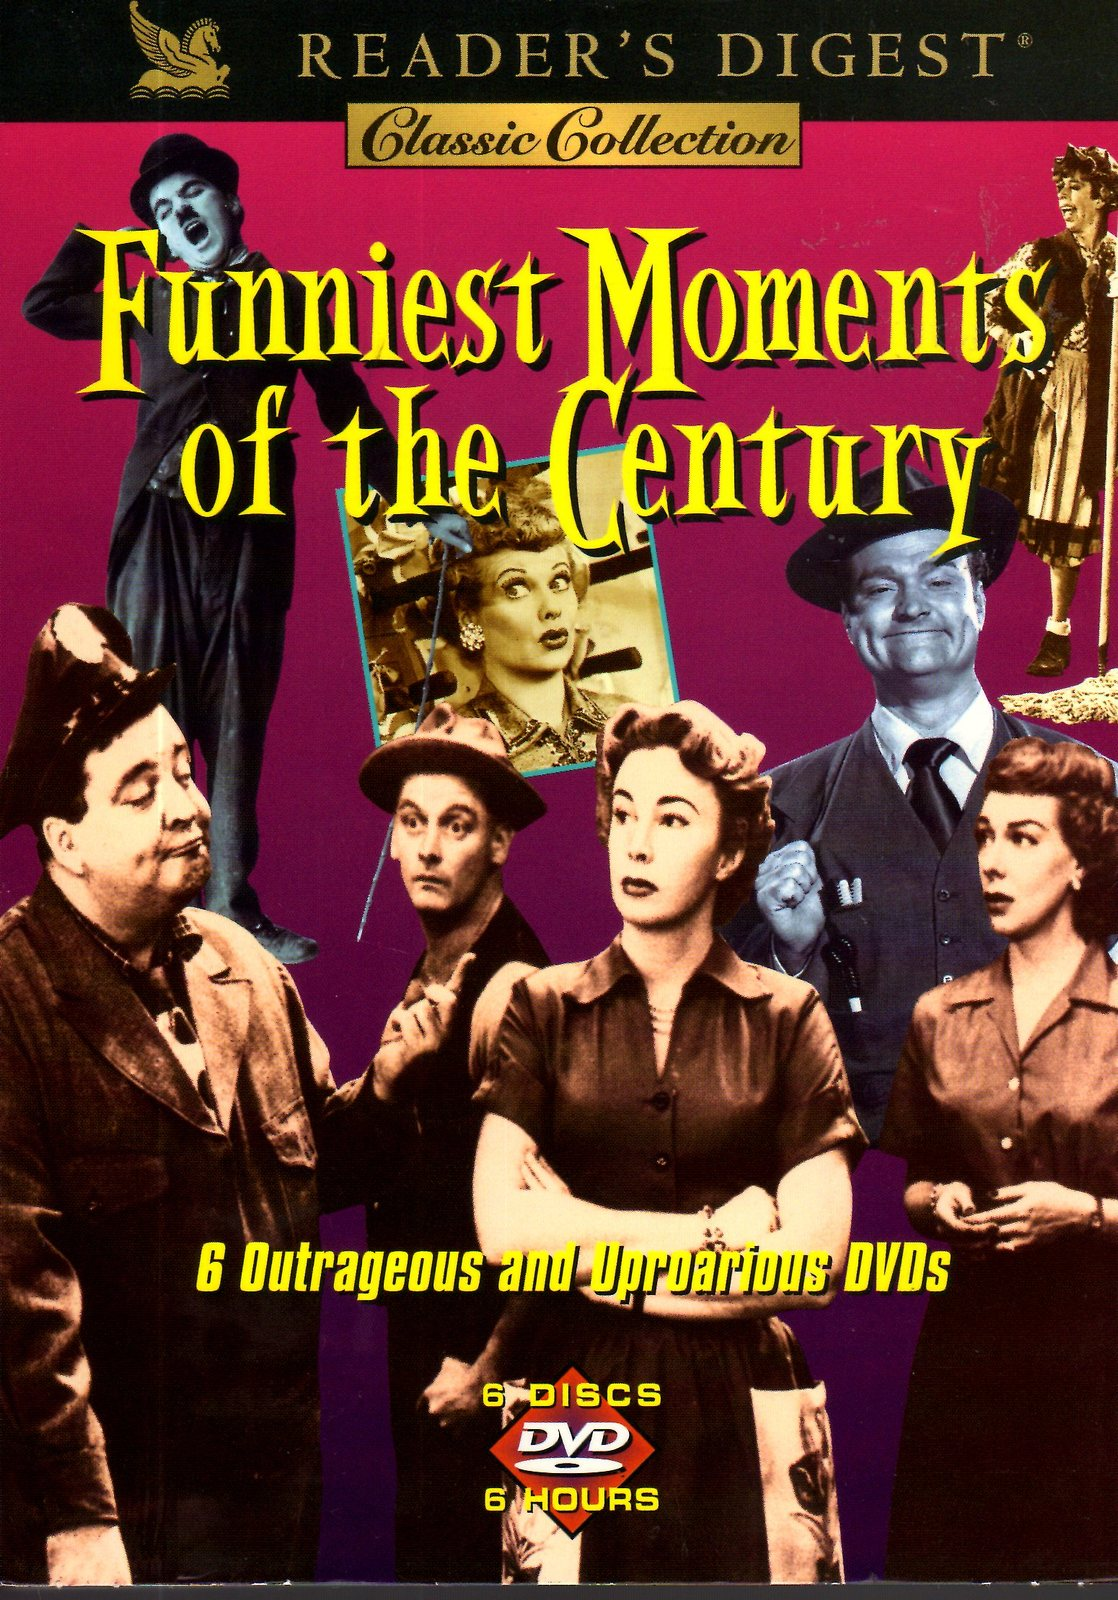 DVD Raeders Digest Classic Collection - FUNNIEST MOMENTS of The Century(DVD Set)